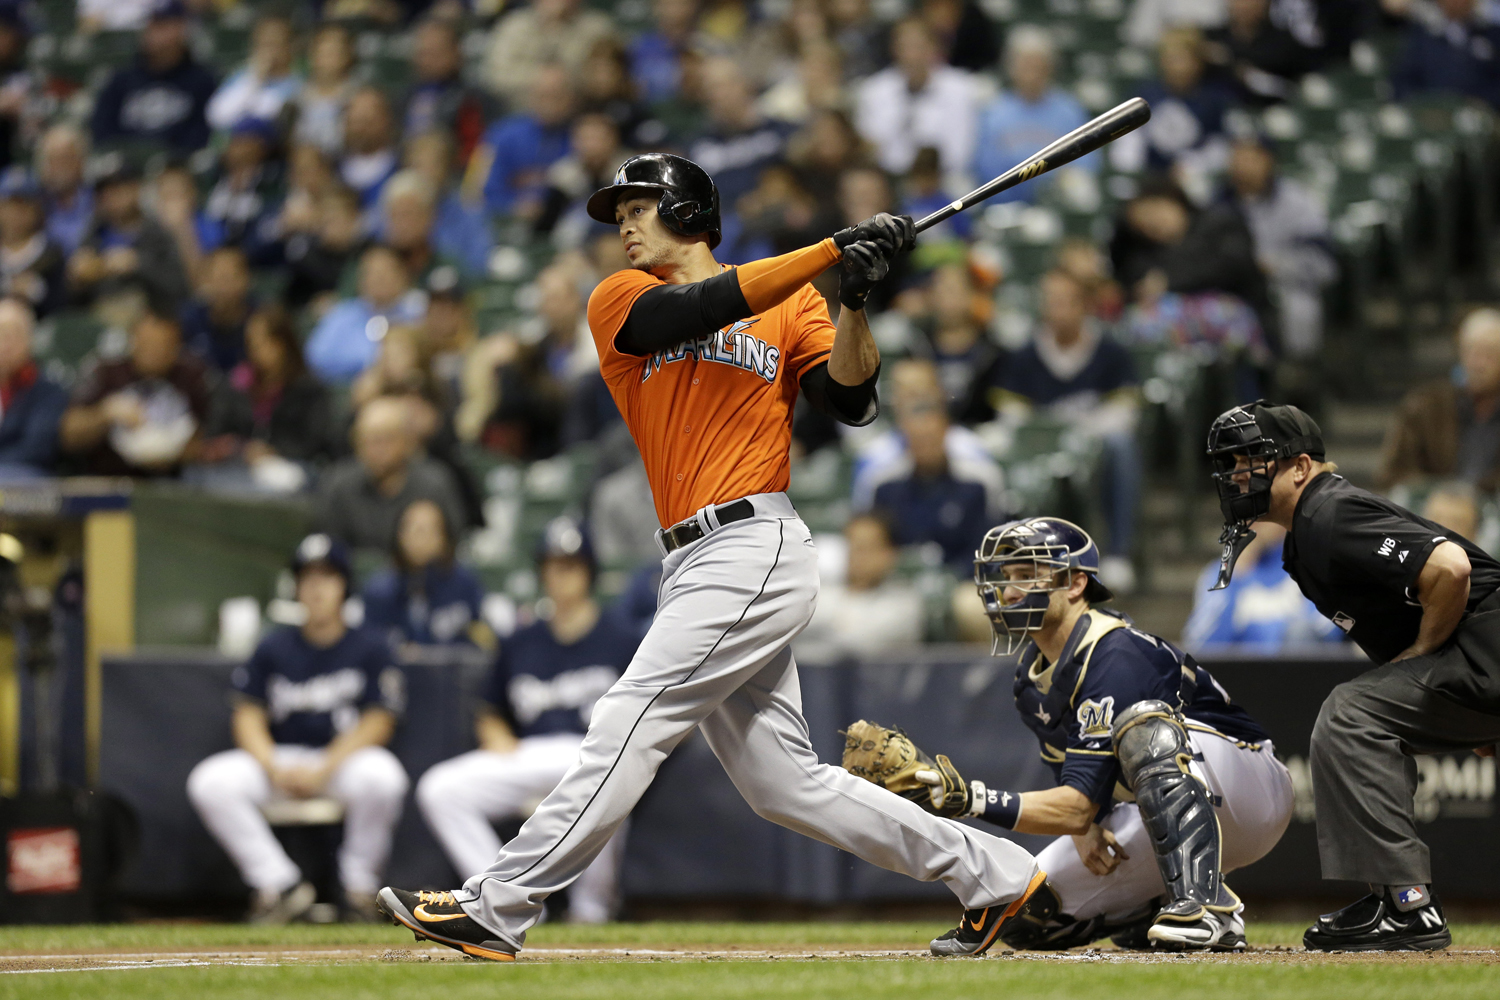 Giancarlo Stanton of the Miami Marlins makes some contact at the plate during a game against the Milwaukee Brewers at Miller Park on September 11, 2014 in Milwaukee, Wisconsin.